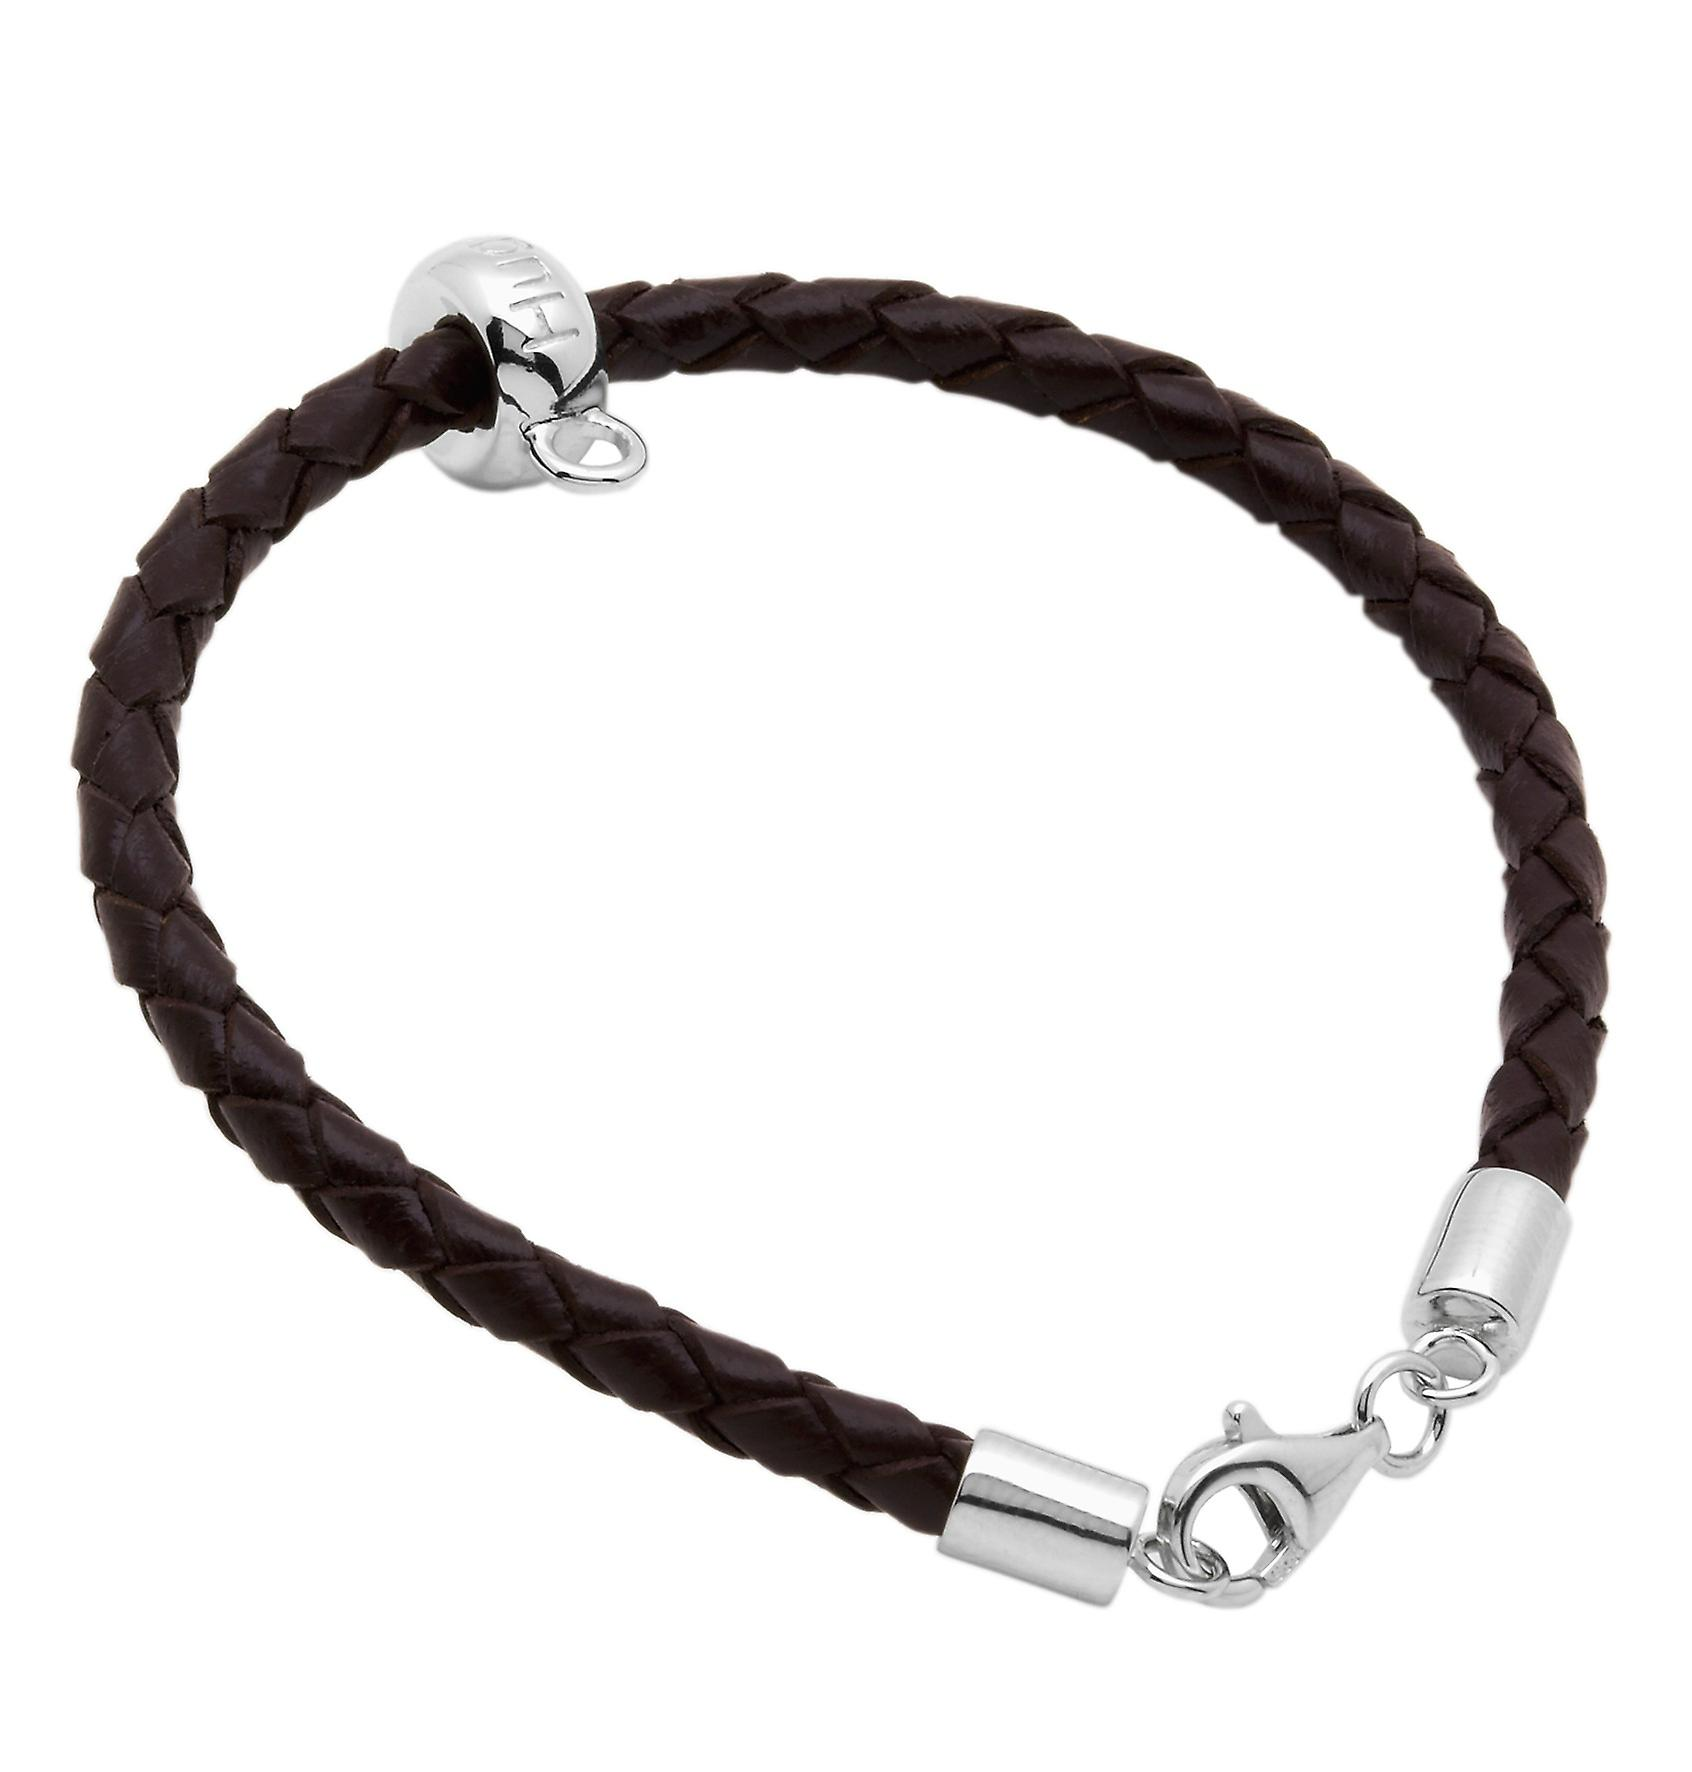 Burgmeister  leather bracelet brown plaited, JHE1063-529 925 sterling silver rhodanized